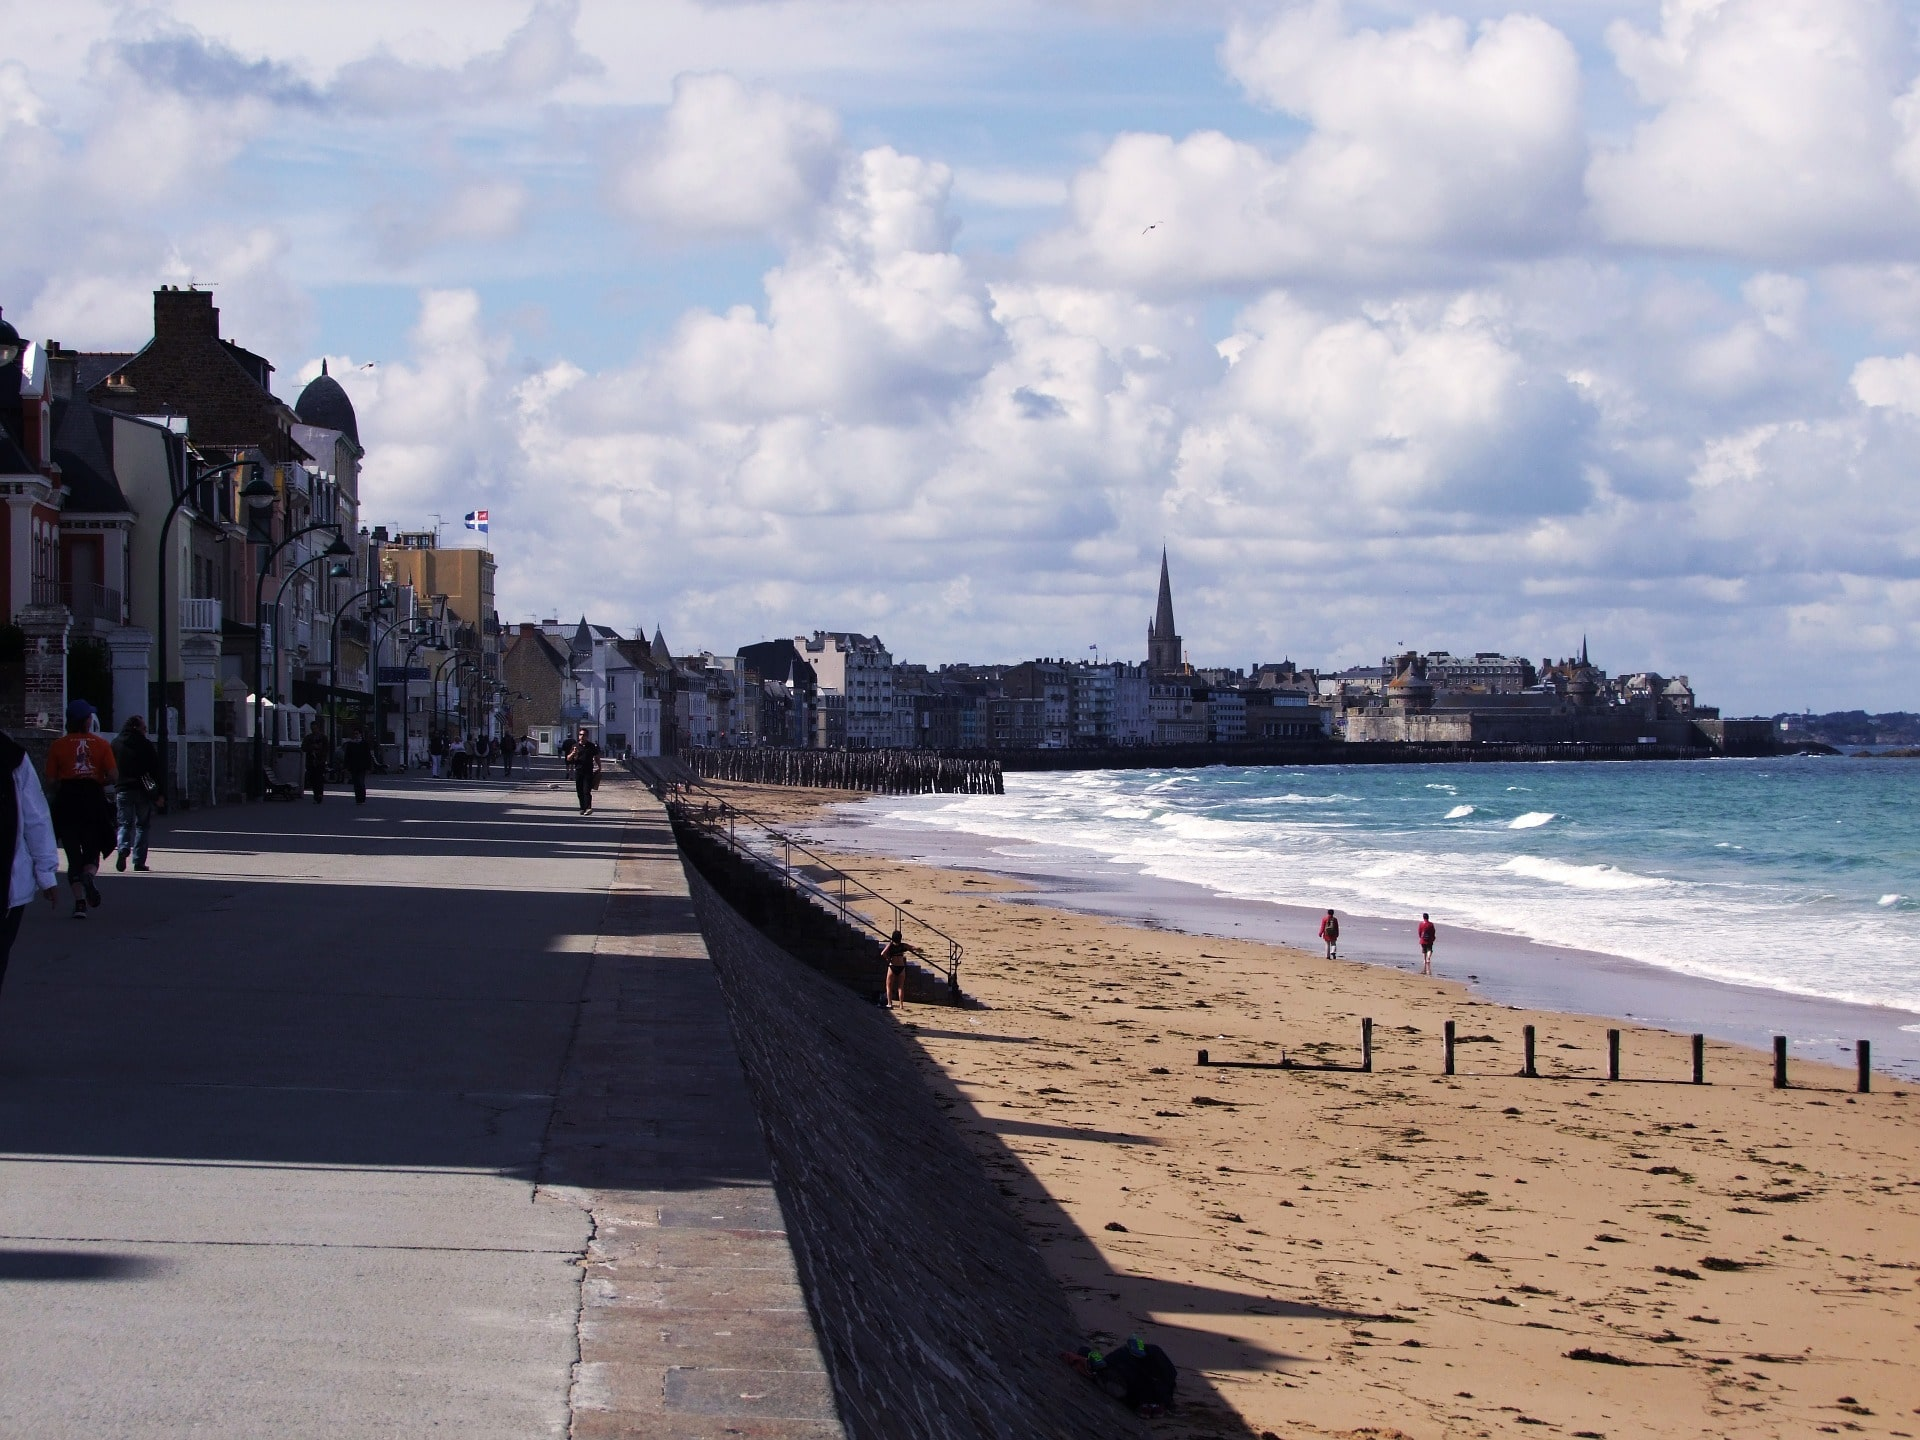 Brittany is one of the most beautiful places to visit in France